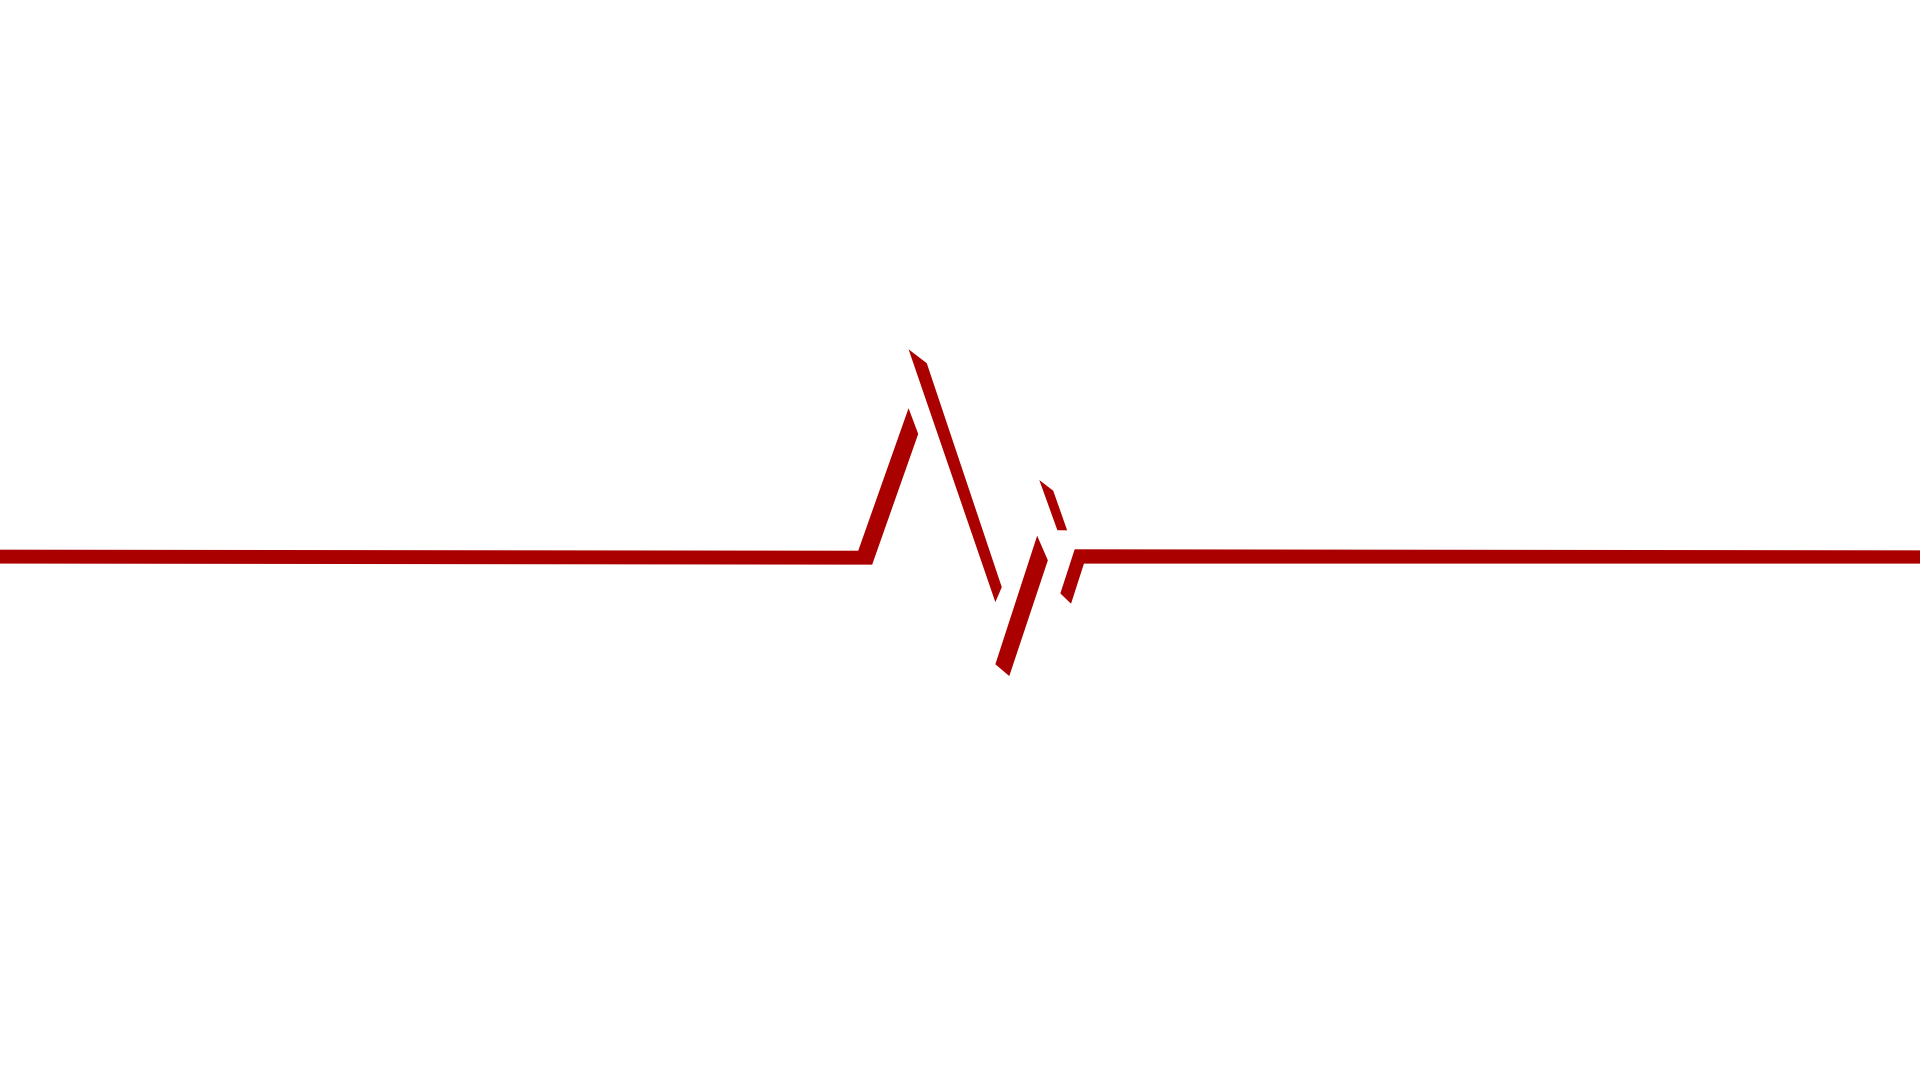 Powerlevel anime simple background white background minimalism abstract  heartbeat - Heartbeat PNG HD